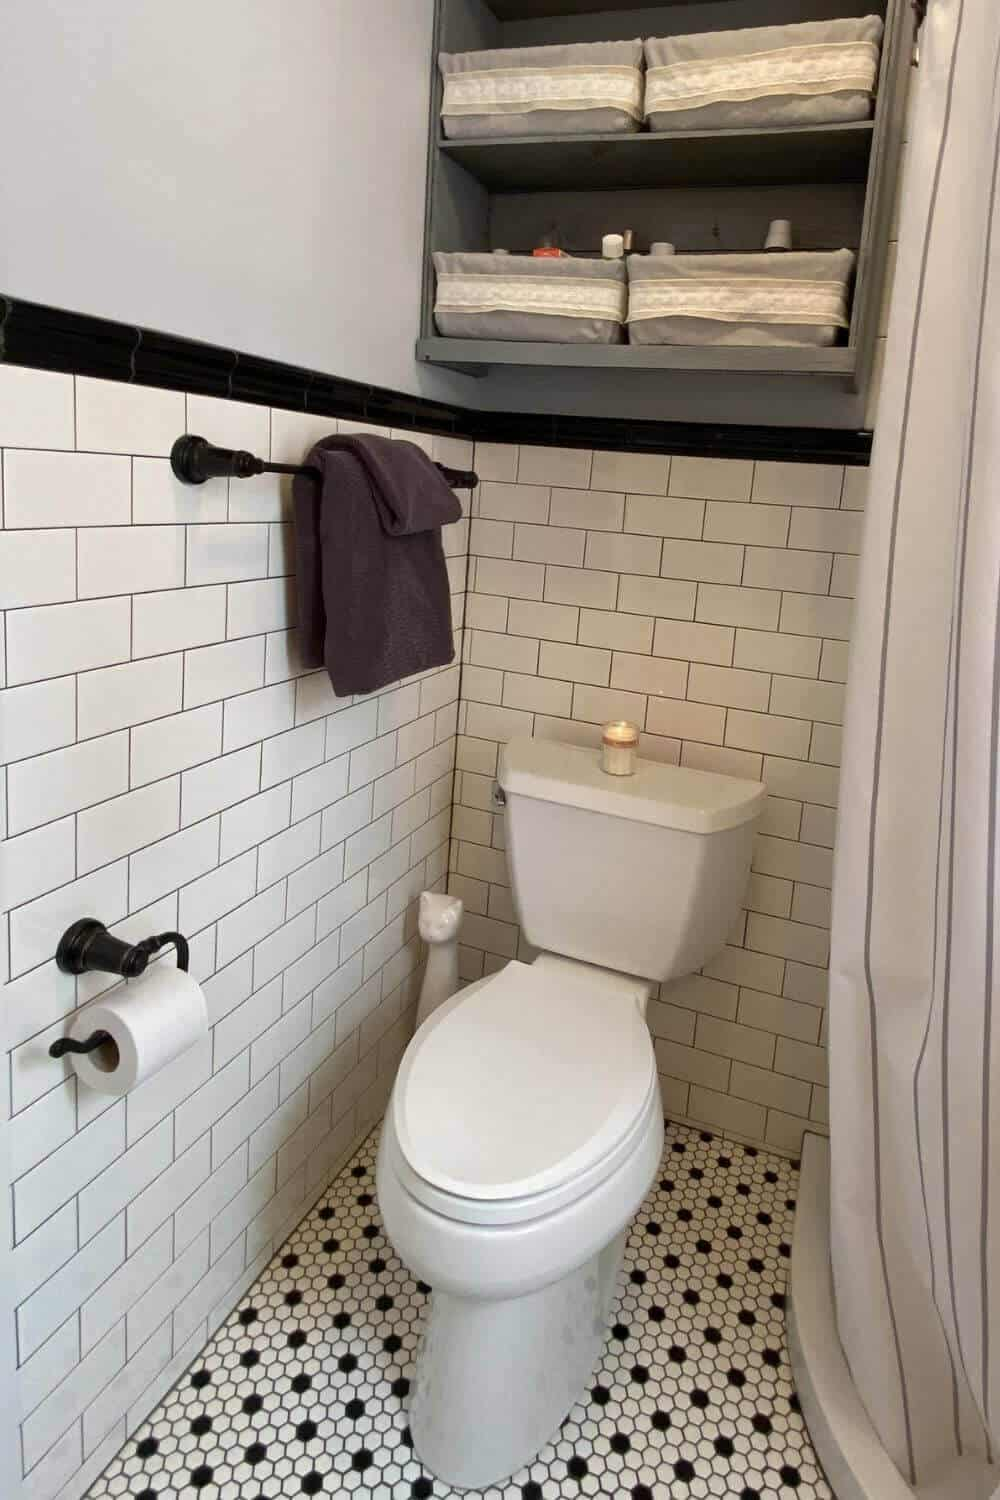 toilet, towel rack with towels, toilet paper holder, shelves, shower curtain